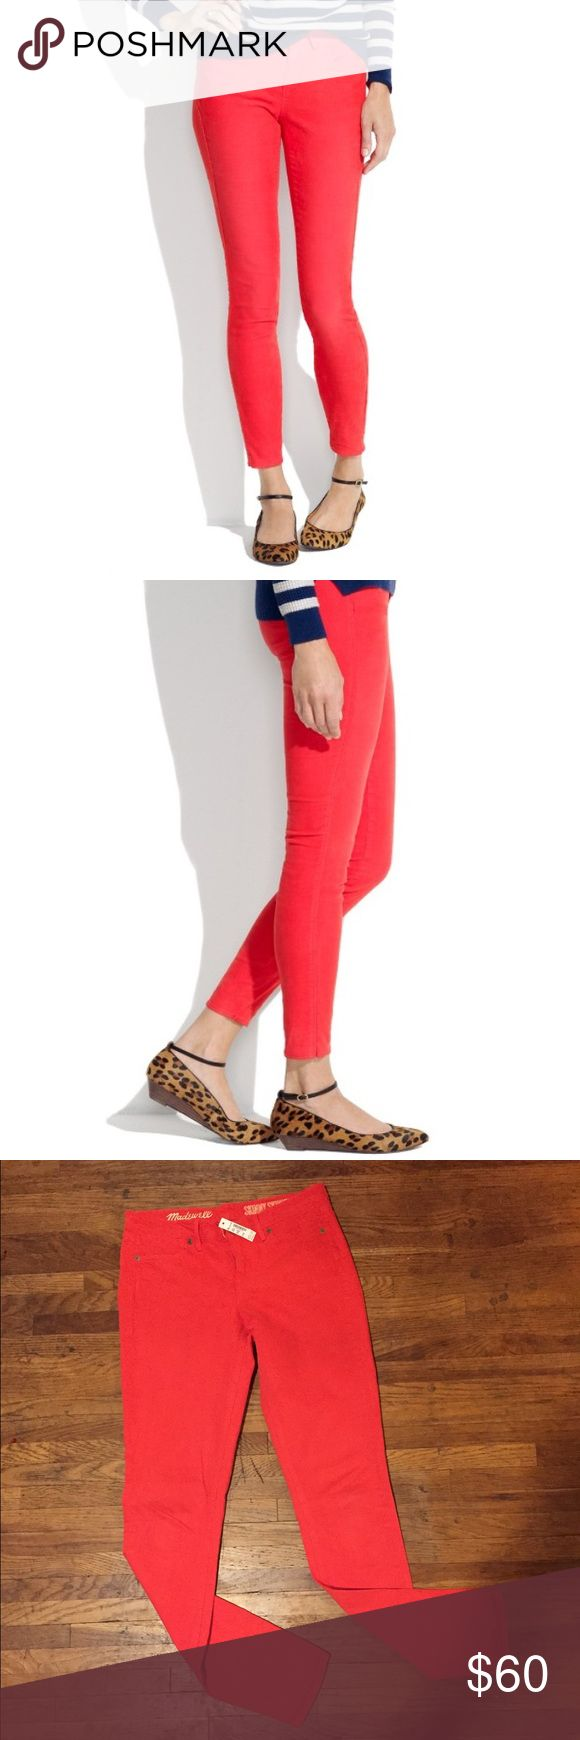 MADEWELL Colored Orange Red Skinny Skinny Pants 26 Brand new with tags MADEWELL Orange Red Skinny Skinny Pants in size 26. Inseam 32. Madewell Jeans